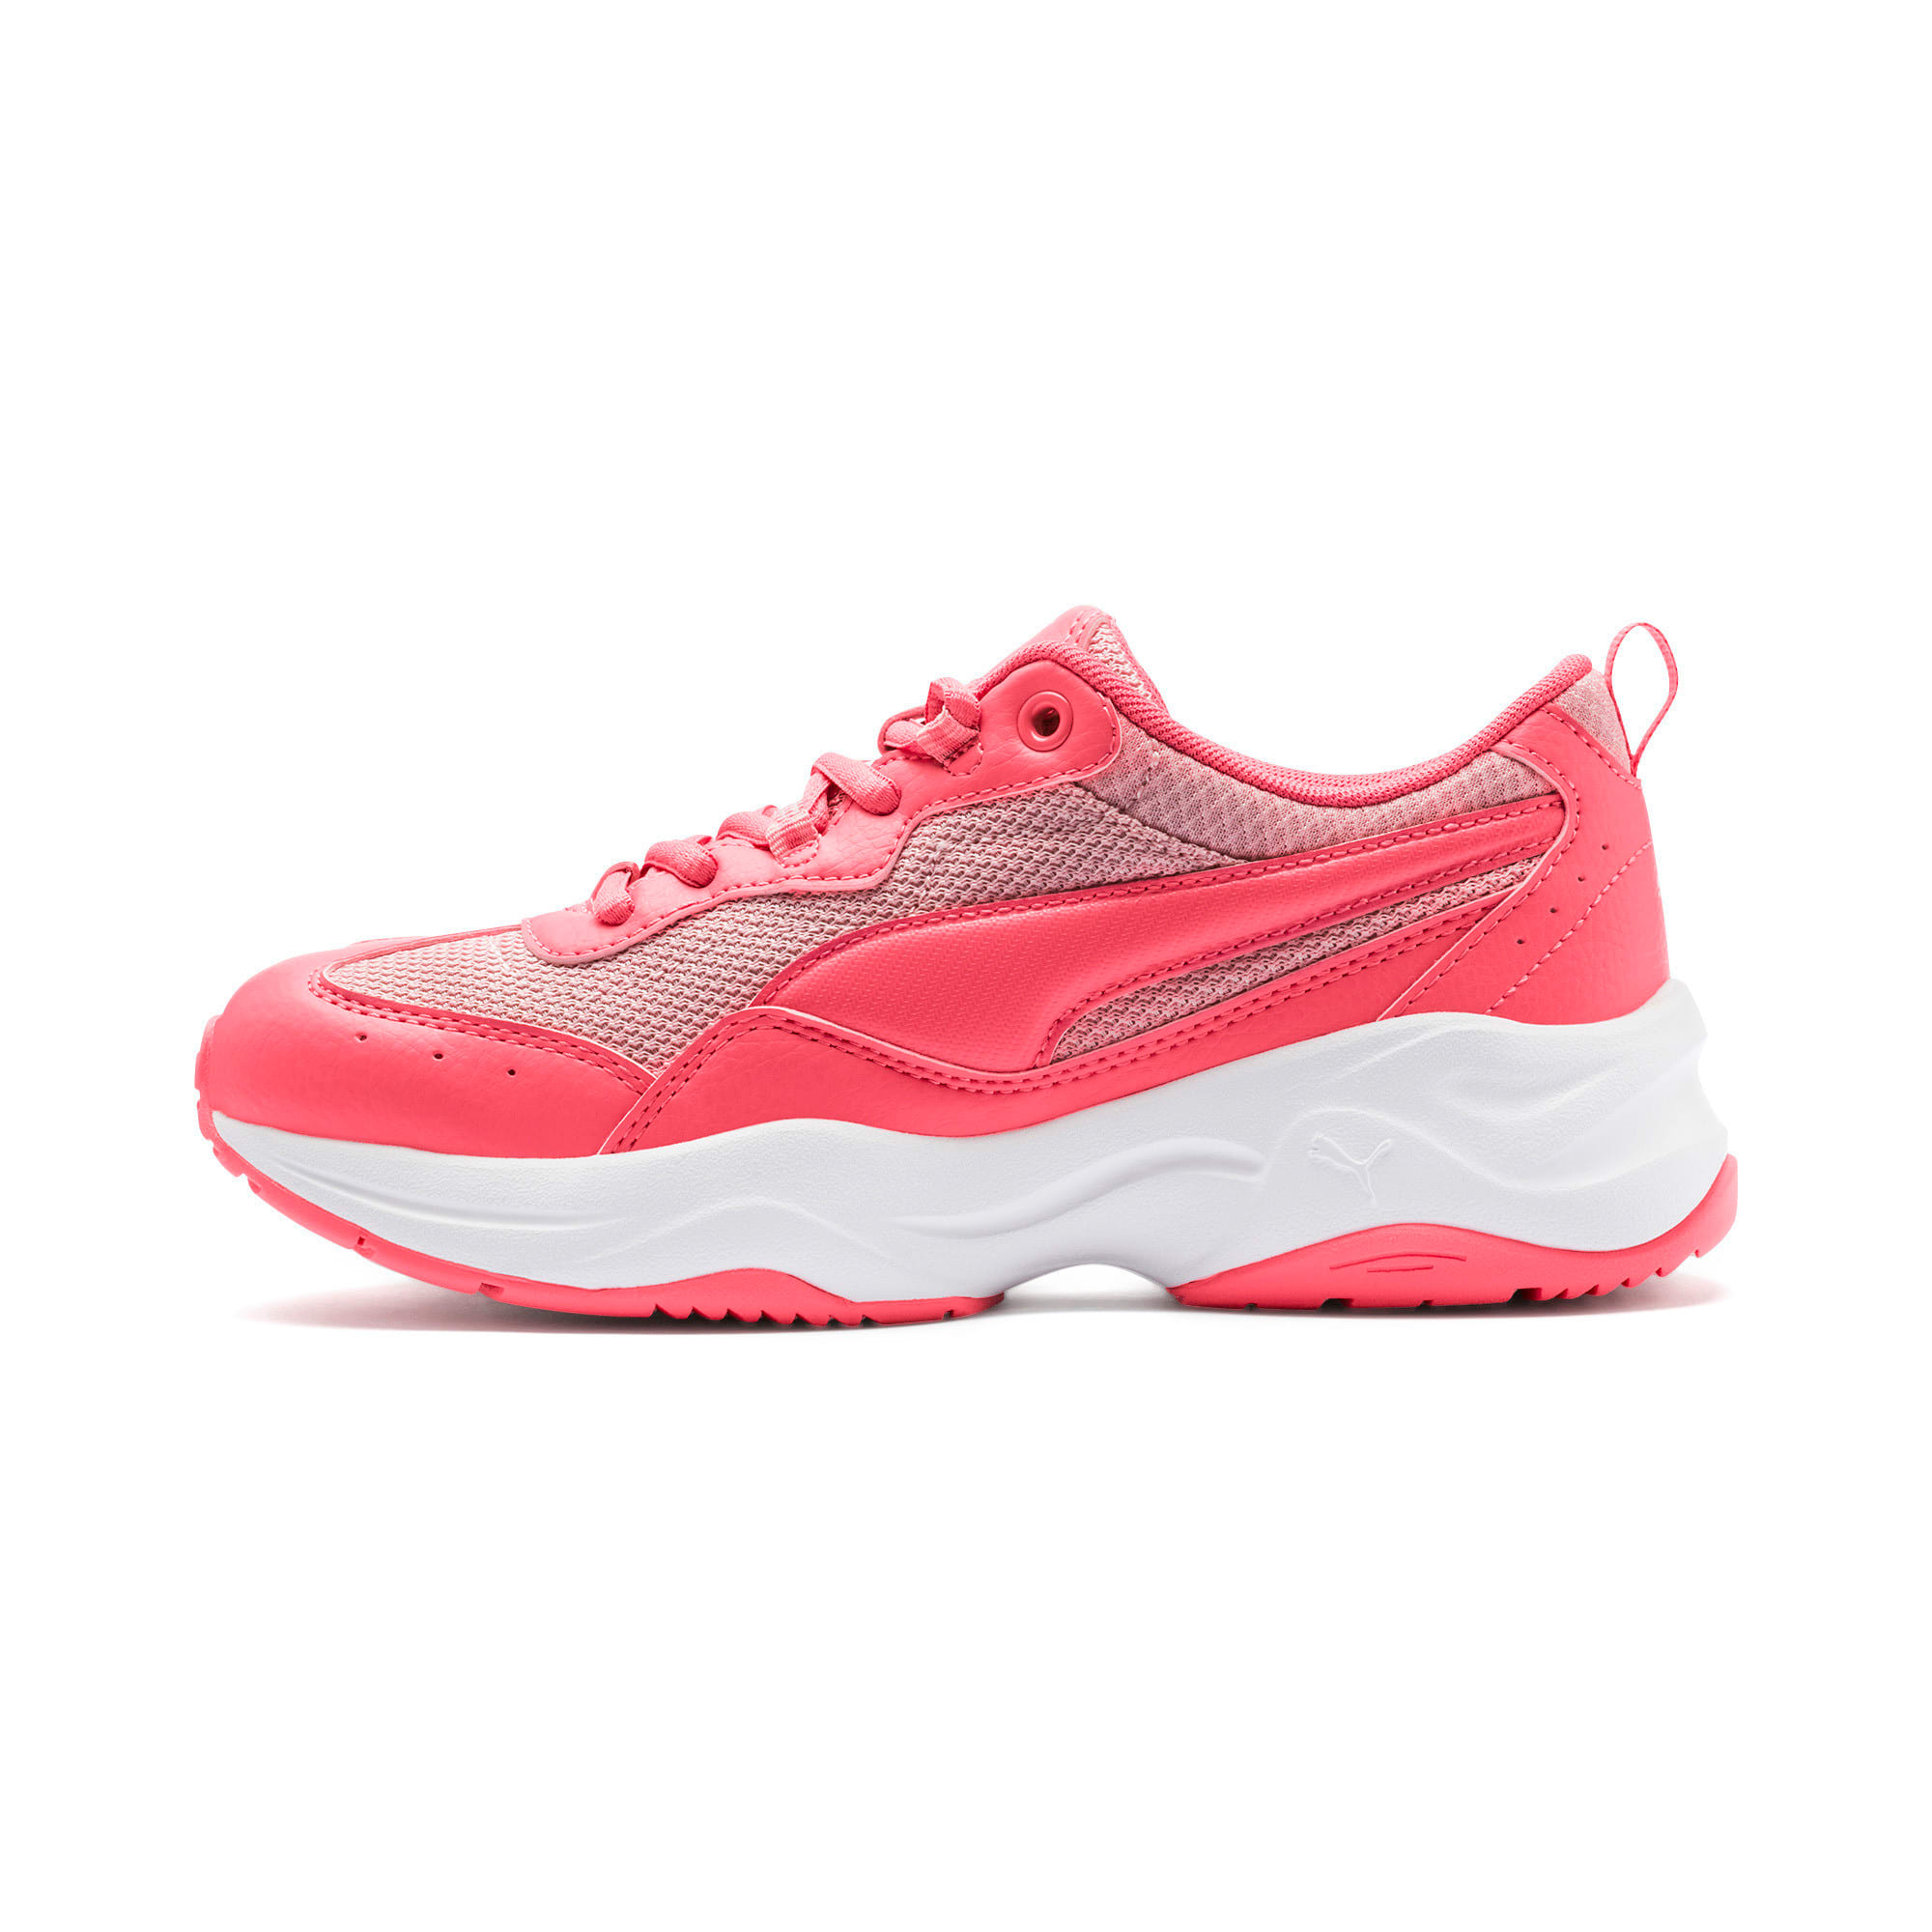 Thumbnail 1 of Cilia Youth Trainers, Calypso Coral-B Rose-White, medium